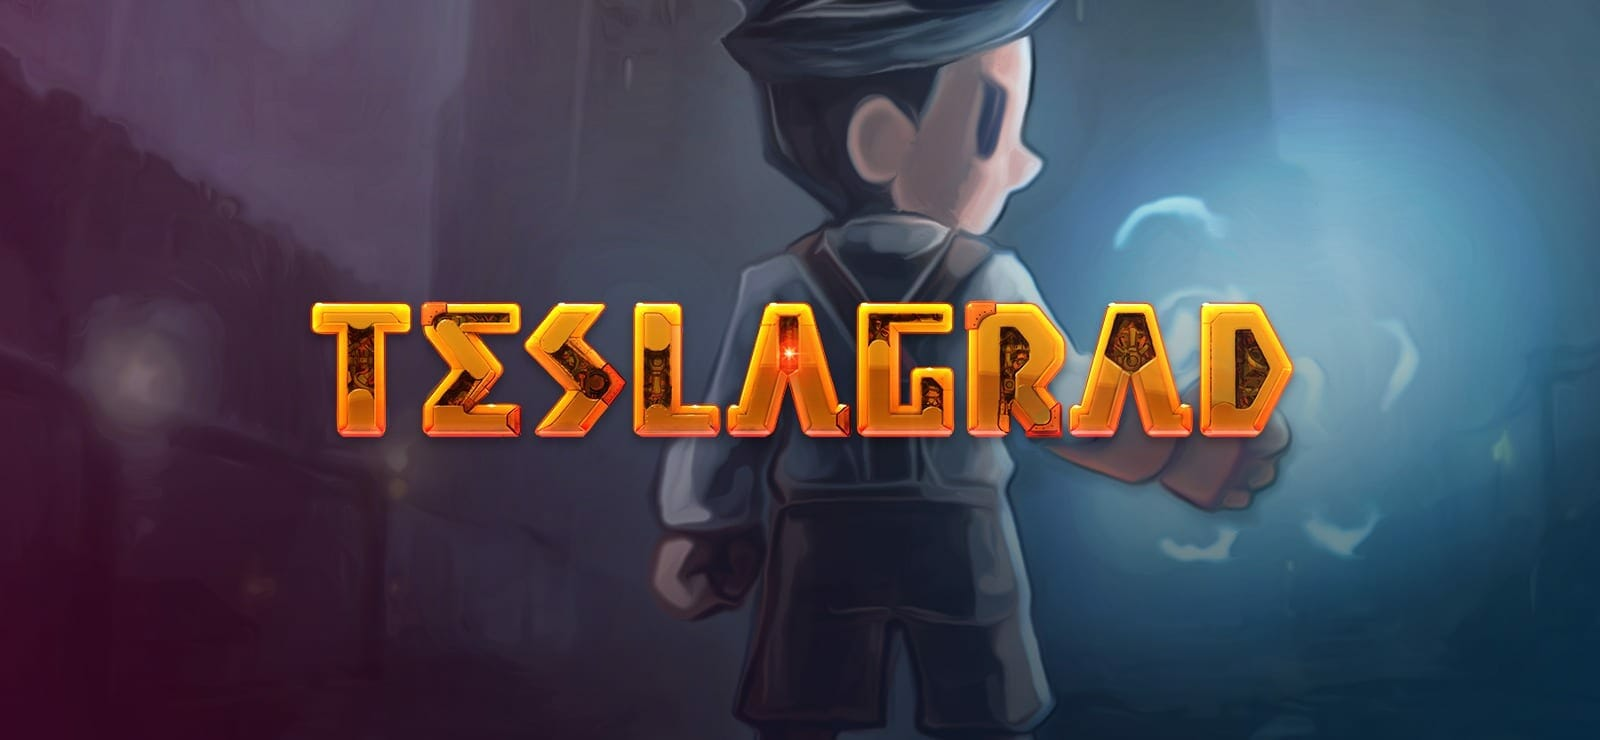 Teslagrad for Mobile Devices